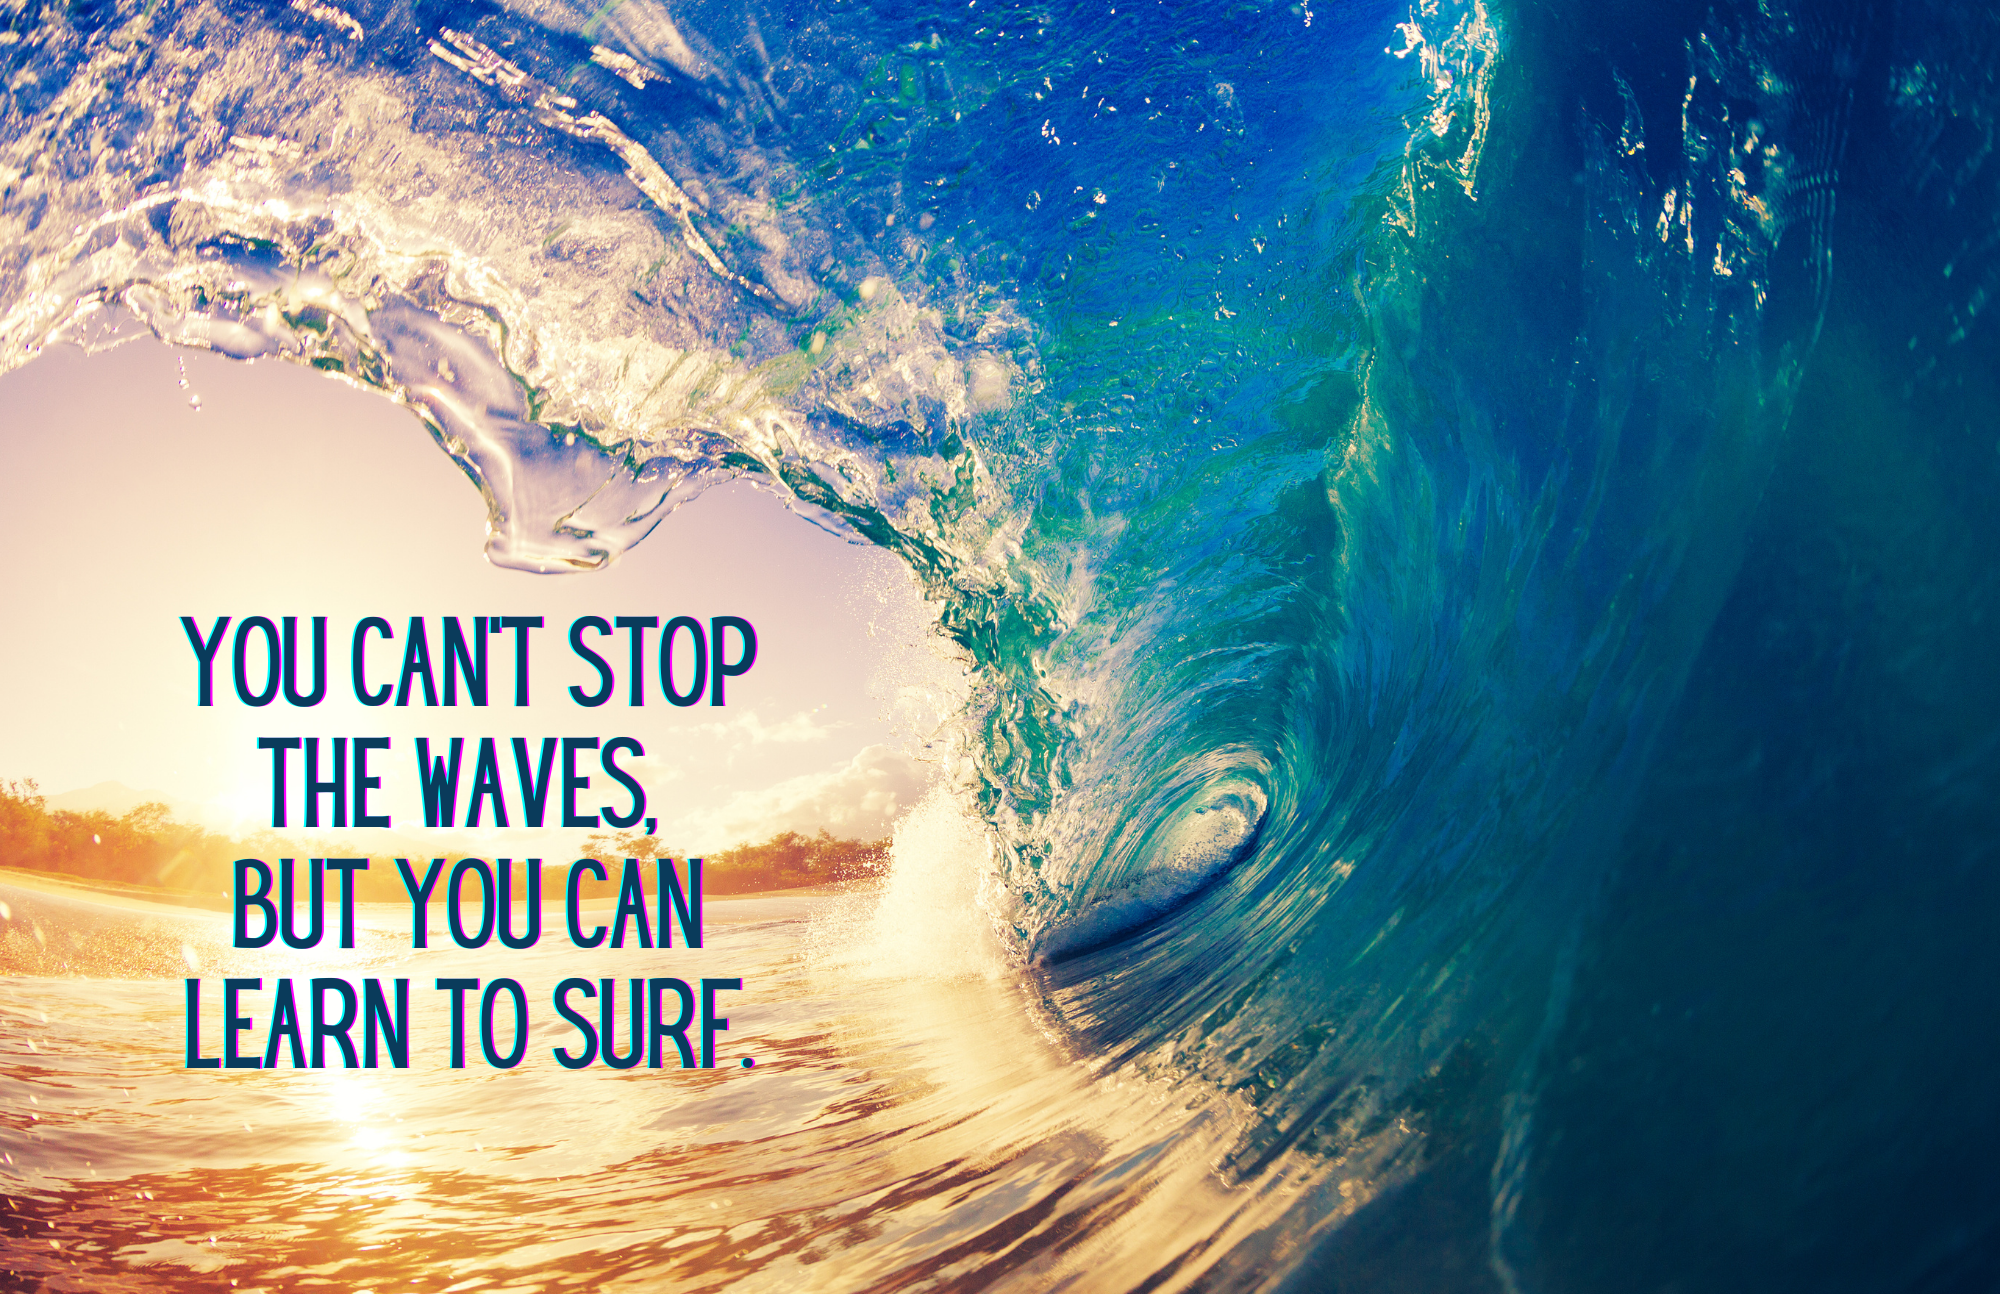 Photo of a sunset viewed through a curling, crashing, blue ocean wave, with the text: You can stop the waves, but you can learn to surf.